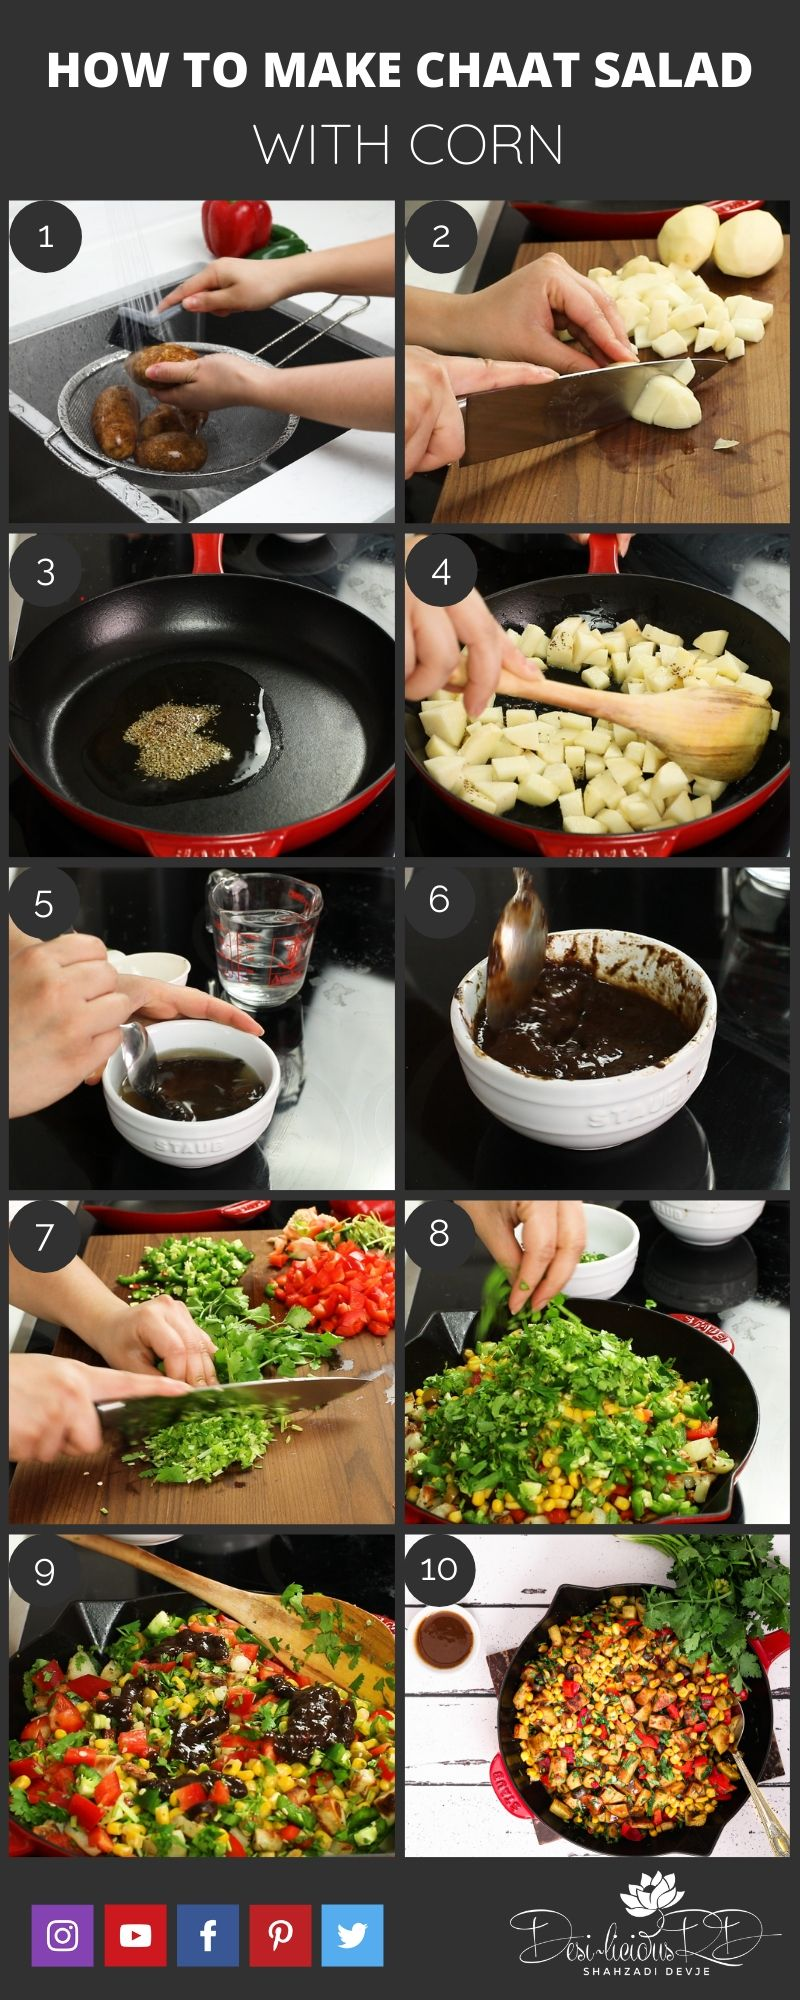 step by step prep shots of how to make Indian chaat salad recipe with corn